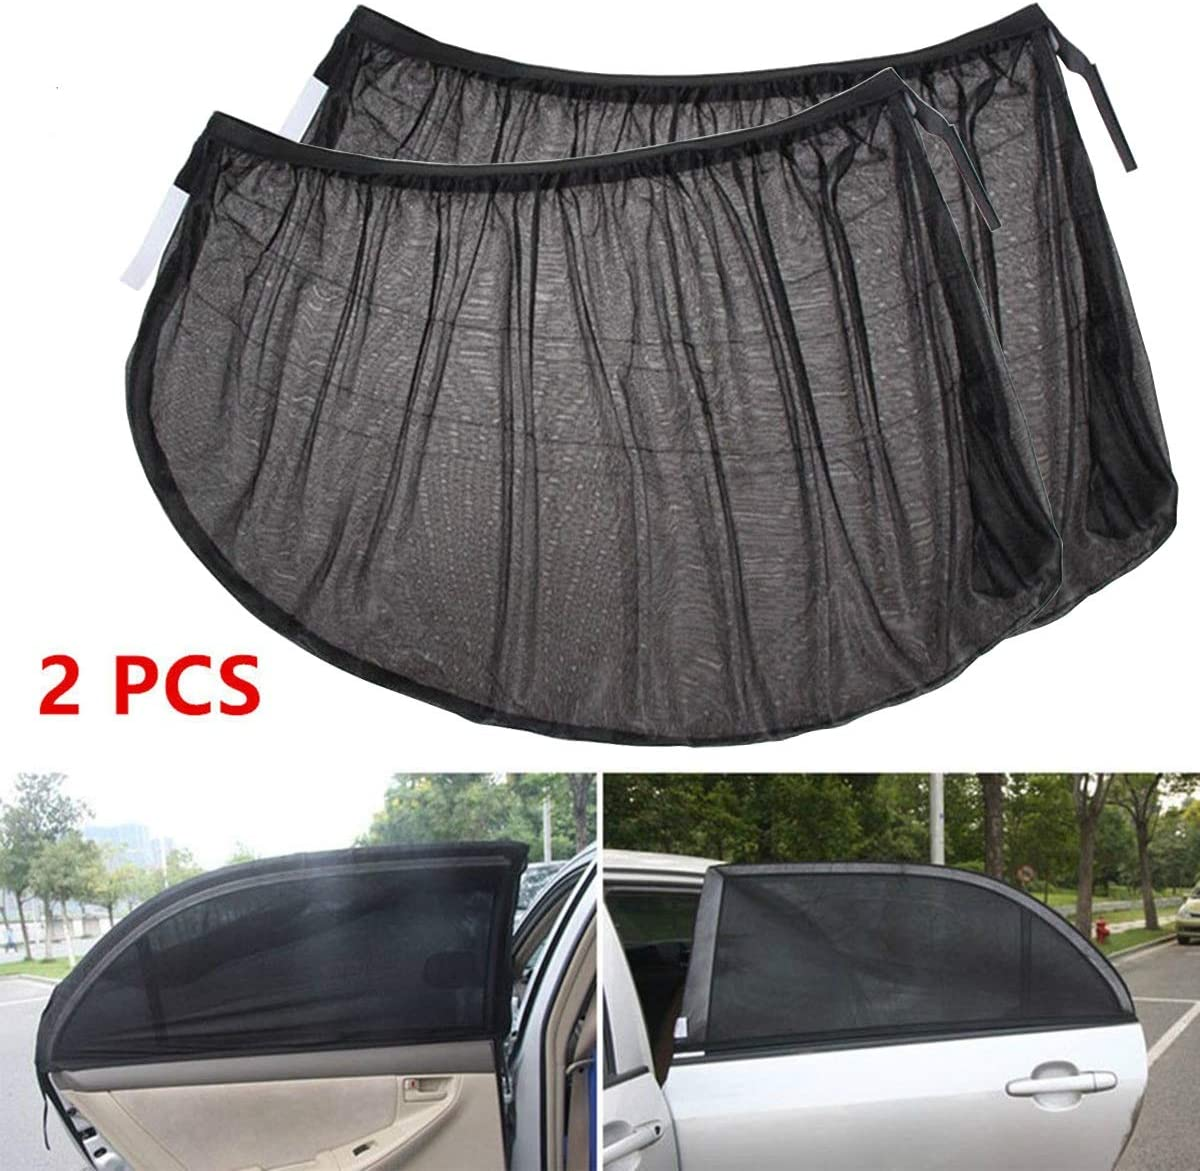 DEALPEAK 1Pair Front//Rear Window Car Sun Shade Cover Rear Side Window Kids Baby Max UV Protection Block Mesh Style : Front Window